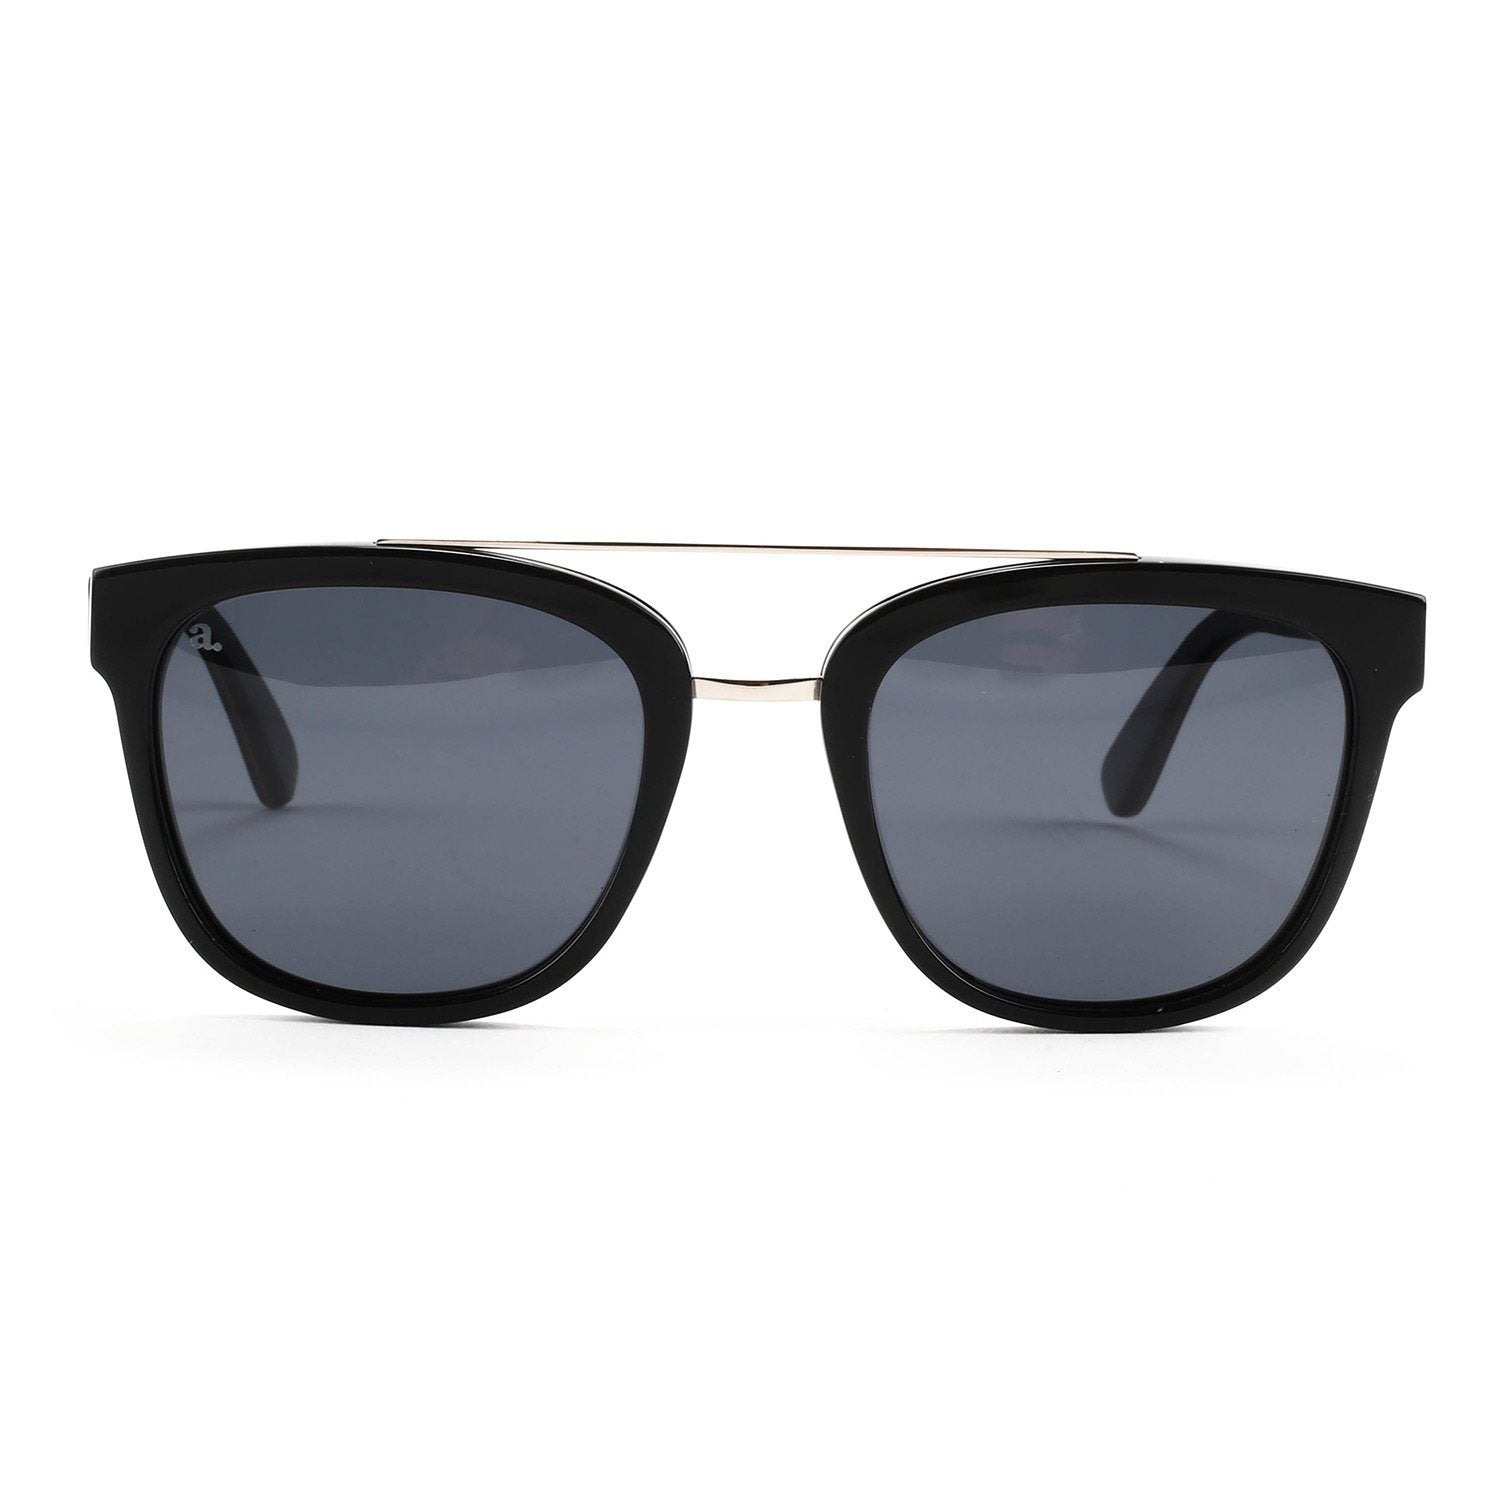 Luca Double Bridge Sunglasses Sunglasses Sirocco Fan Accessories